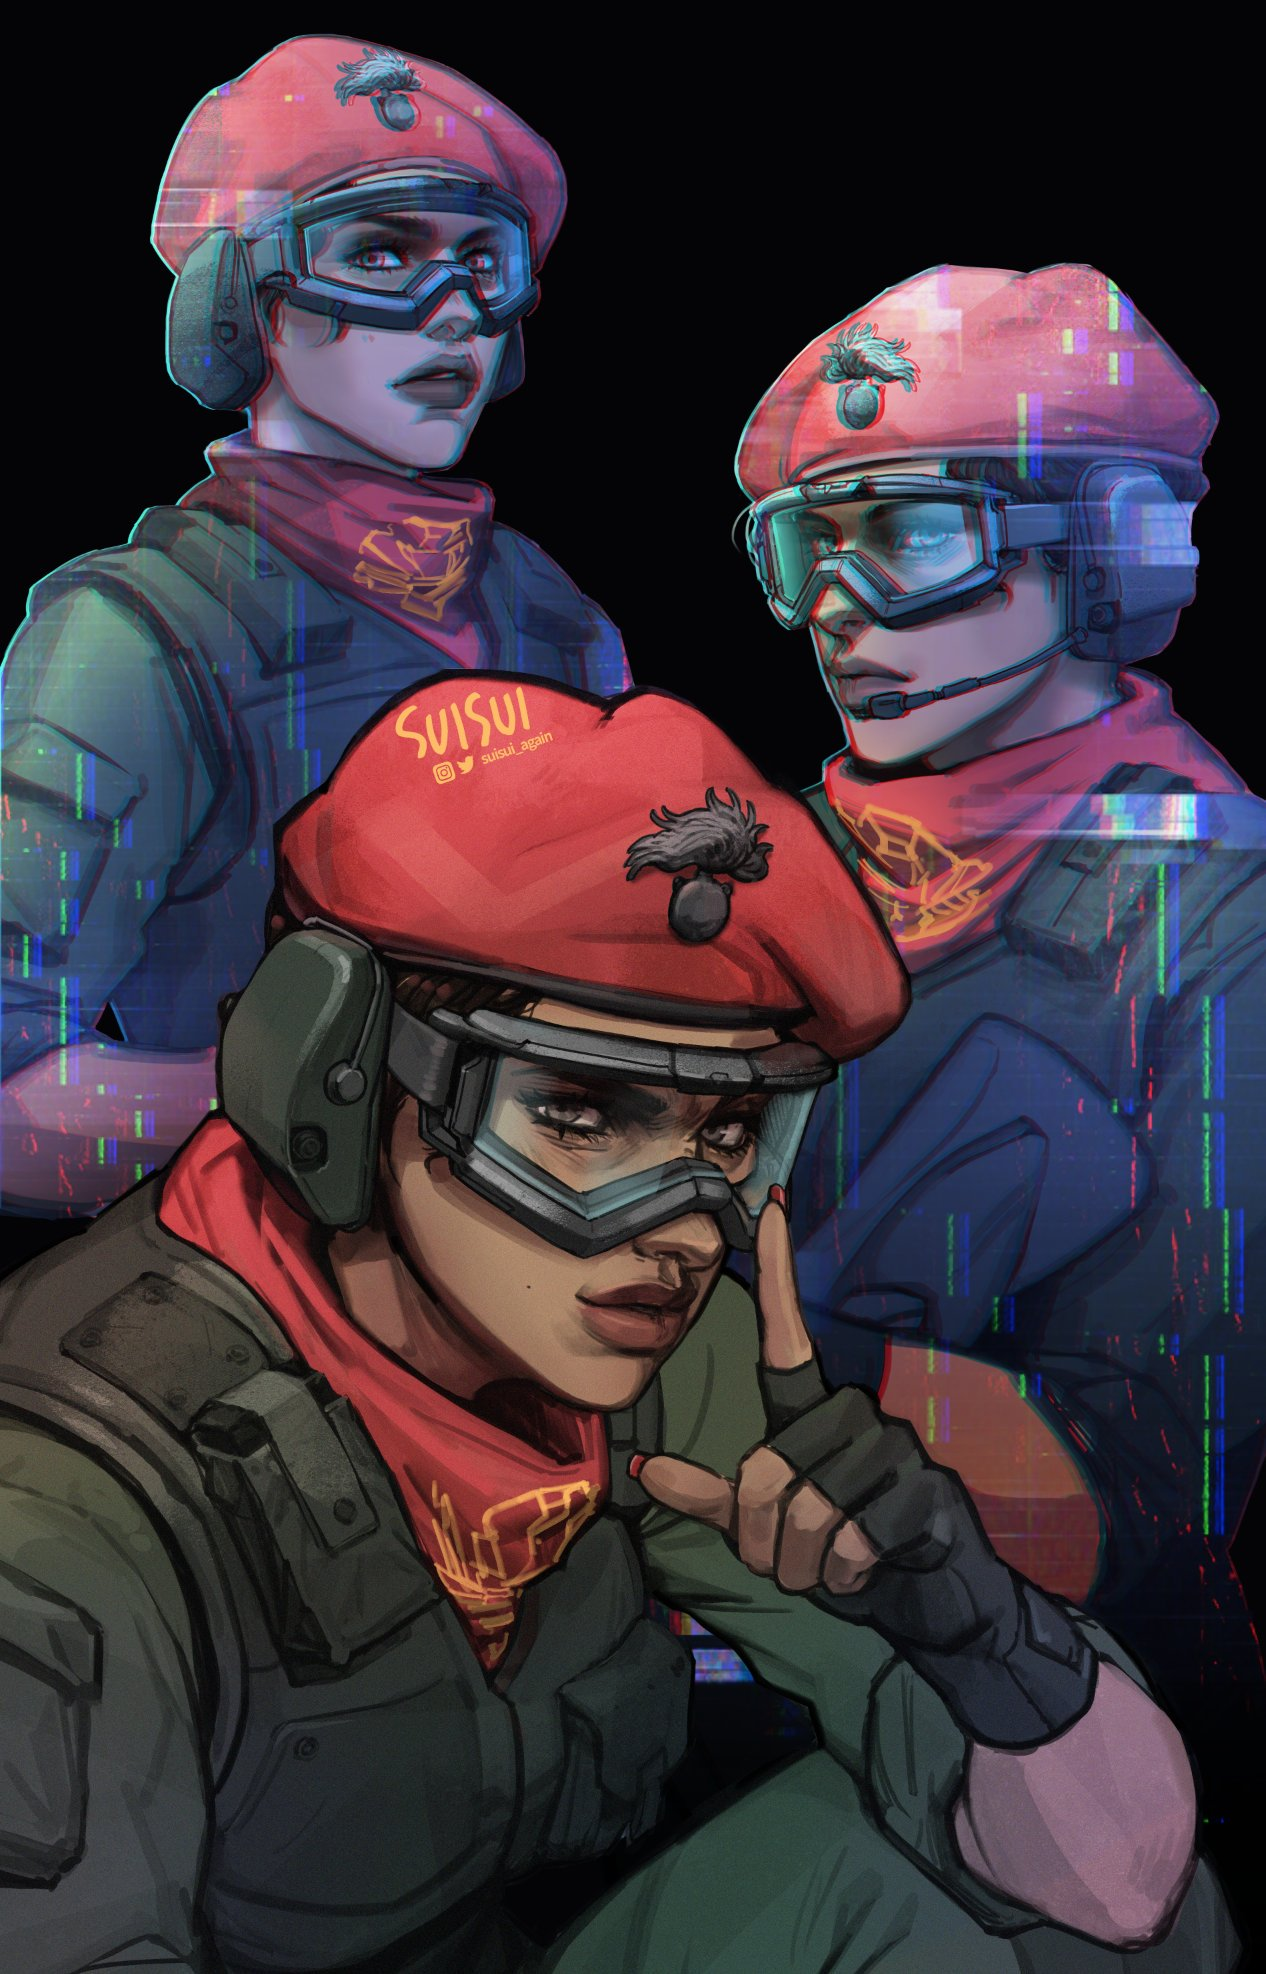 alibi_(rainbow_six_siege) artist_name beret black_hair brown_hair commentary dark_skin ear_protection earmuffs english_commentary fingerless_gloves gloves goggles hat headset highres hologram index_finger_raised lips looking_at_viewer military_operator nail_polish neckerchief nose rainbow_six_siege red_headwear short_hair suisui_again twitter_username